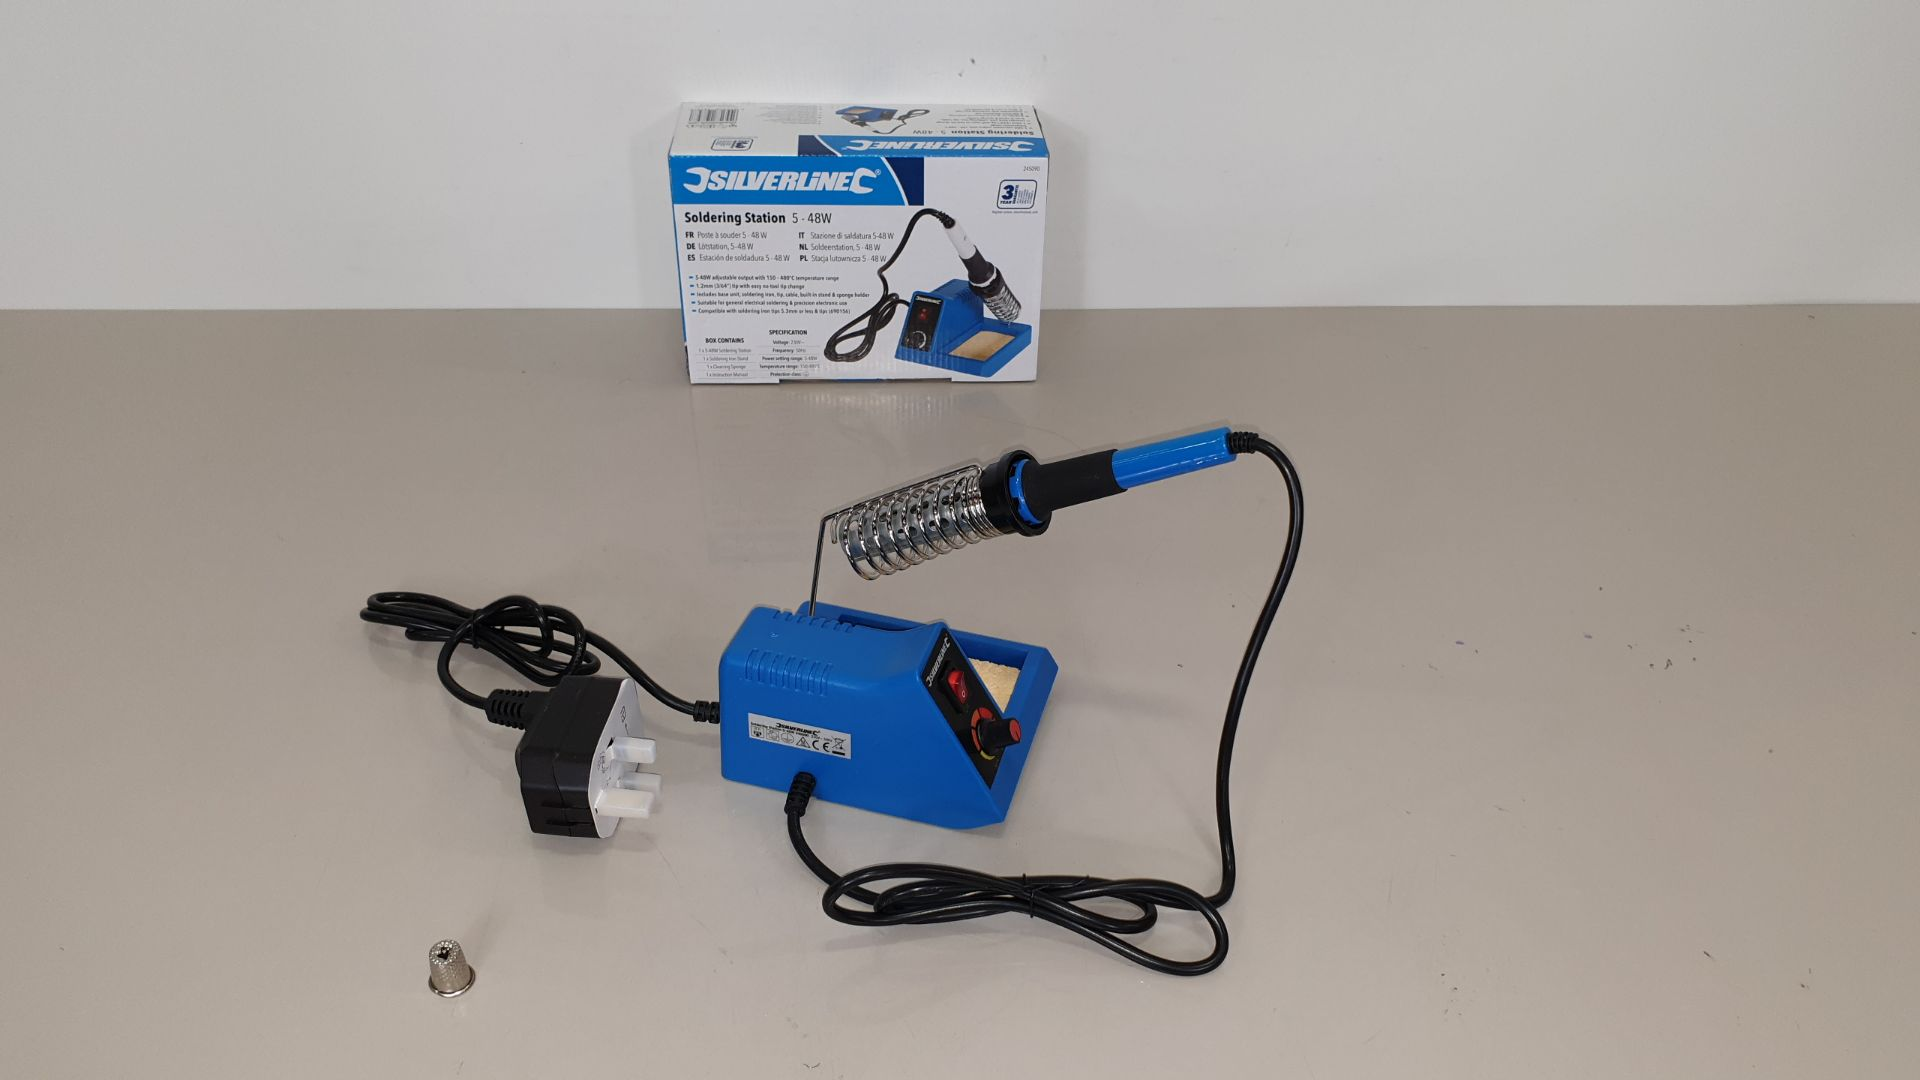 Lot 230 - 20 X BRAND NEW SILVERLINE SOLDERING STATIONS 5-48W (PROD CODE 245090) - TRADE PRICE £31.34 EACH (EXC